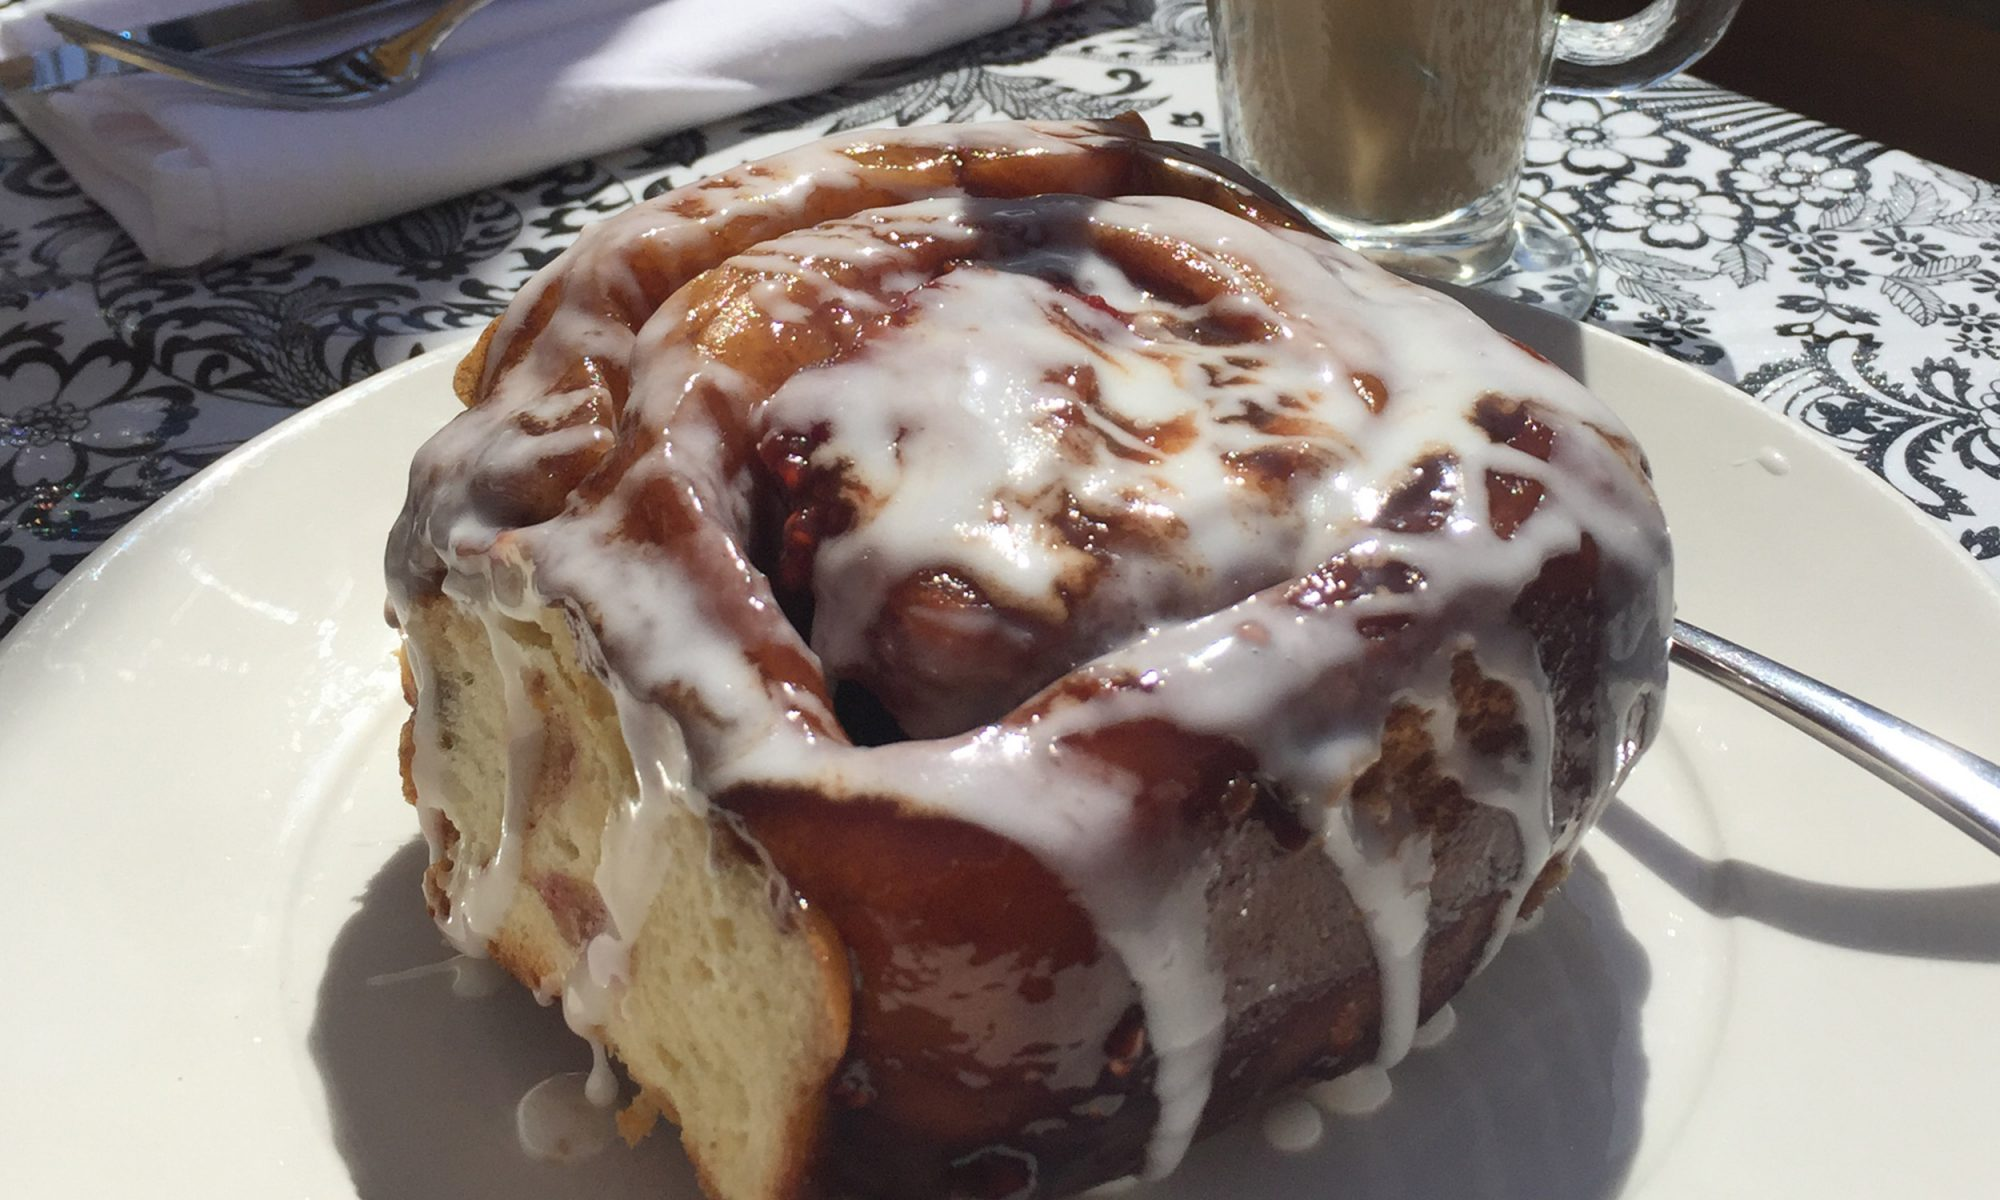 Brown Sugar Cinnamon Rolls Are County Fair-Level Excellent